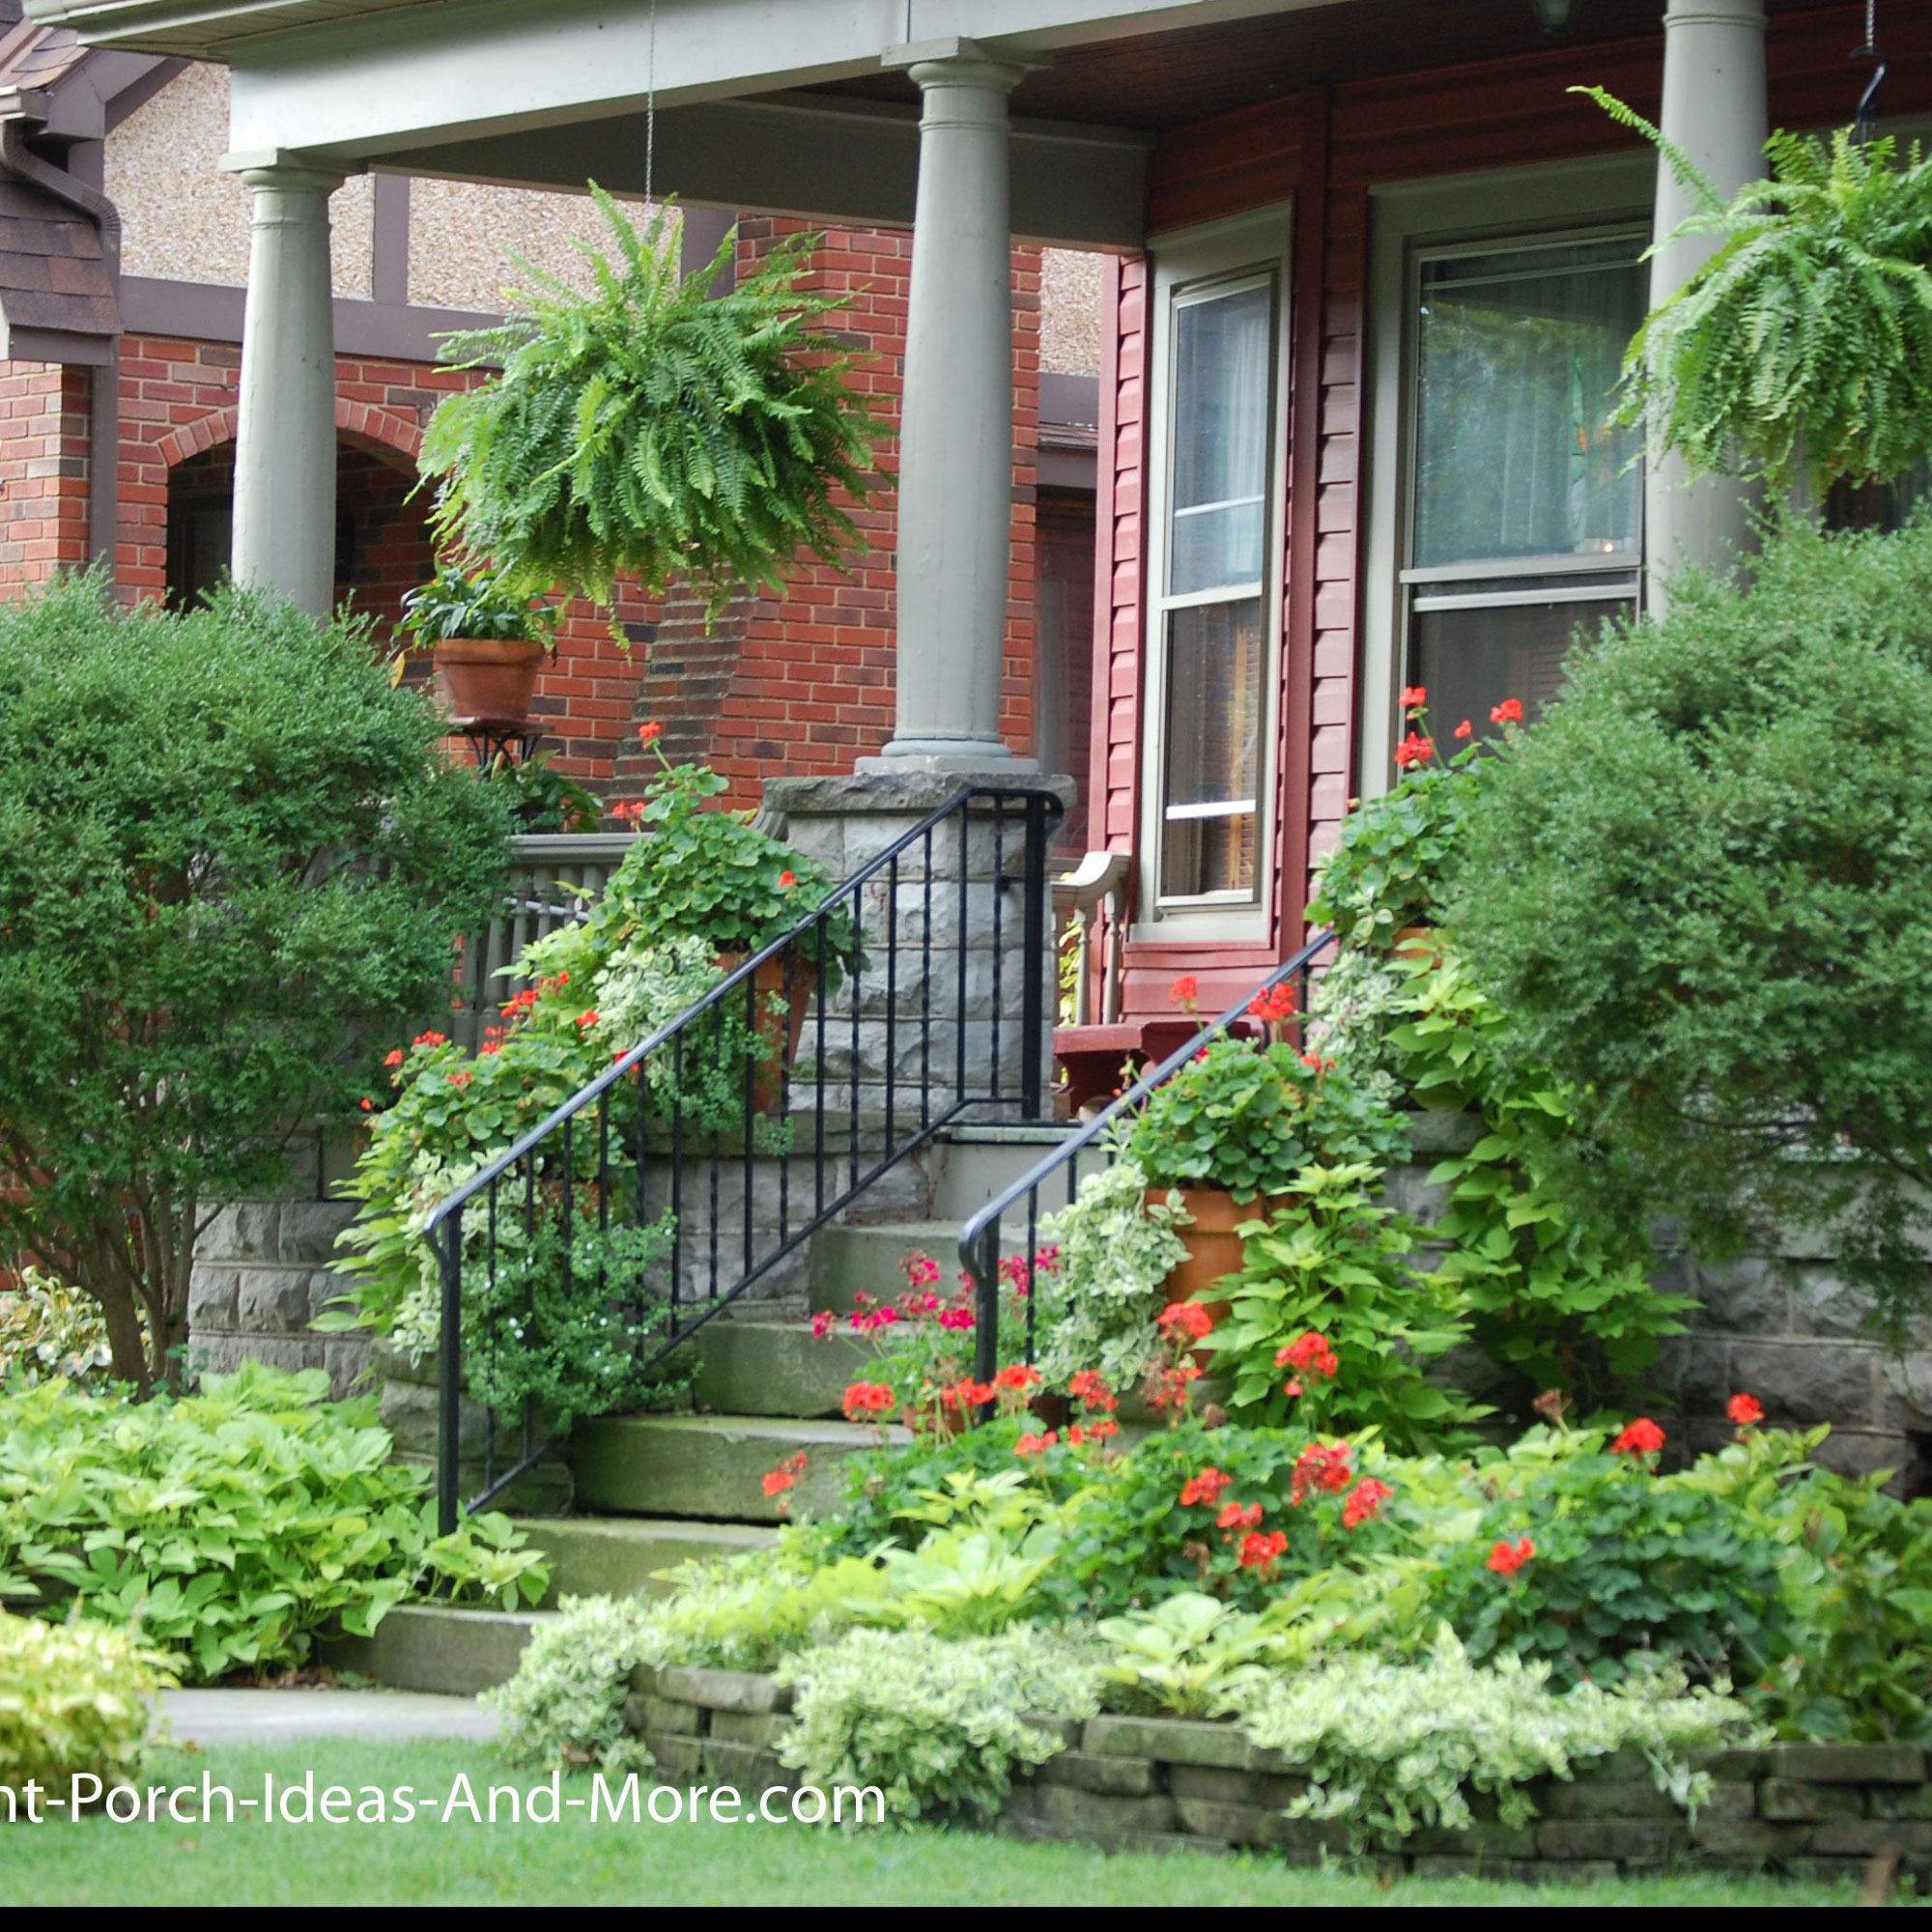 Porch landscaping ideas for your front yard and more for Landscape design